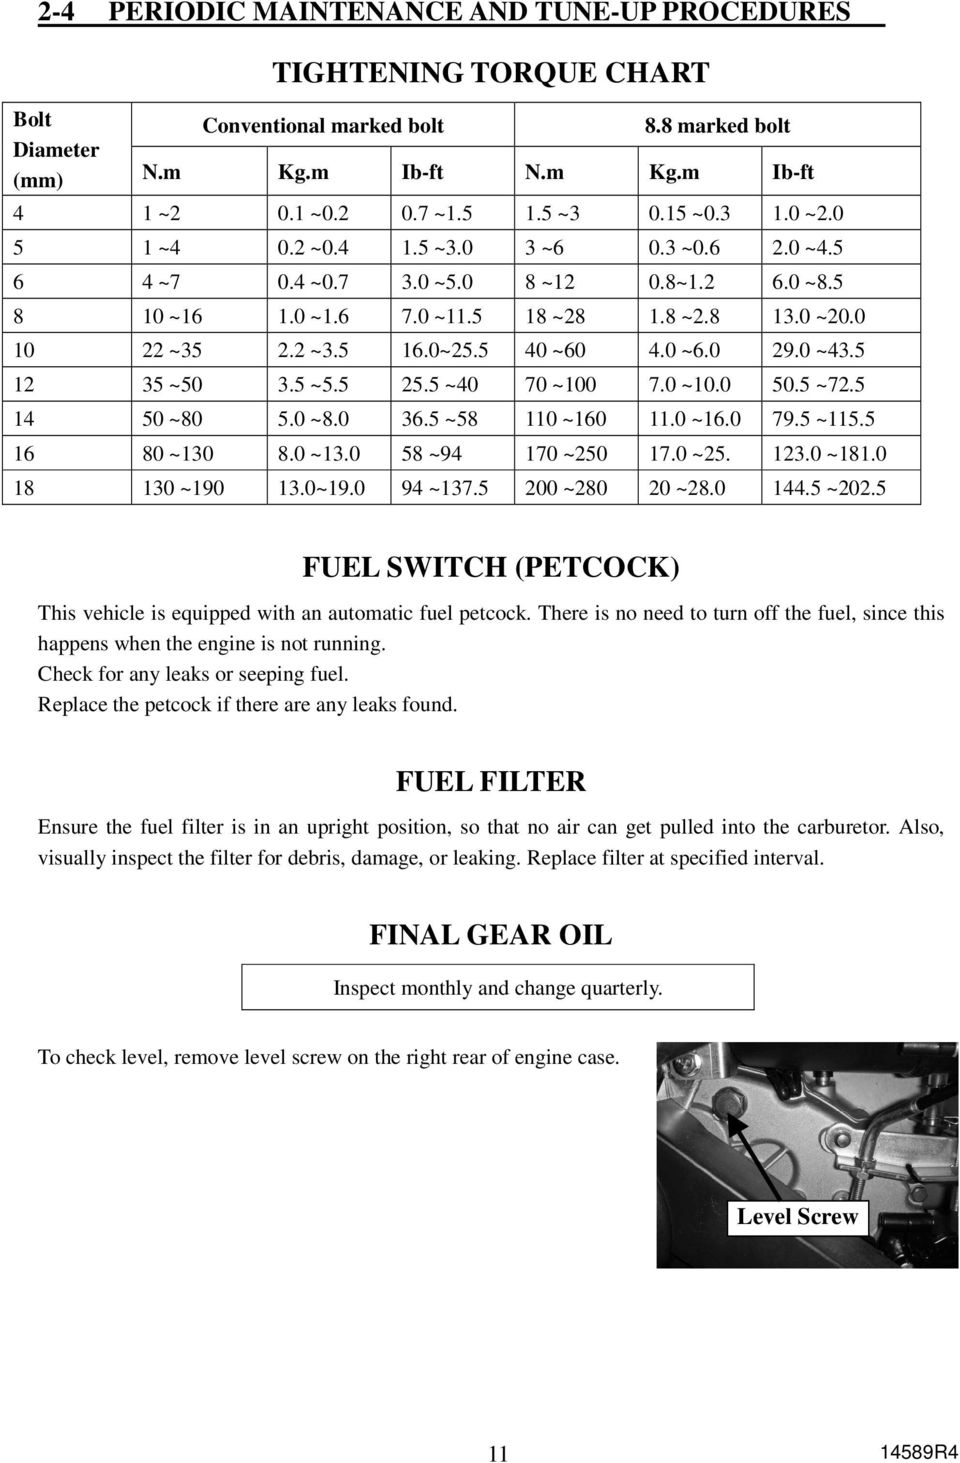 Service Manual 150cc Product 6150 7150 200 Series Pdf Eclipse Fuel Filter Location 5 40 60 290 435 12 35 50